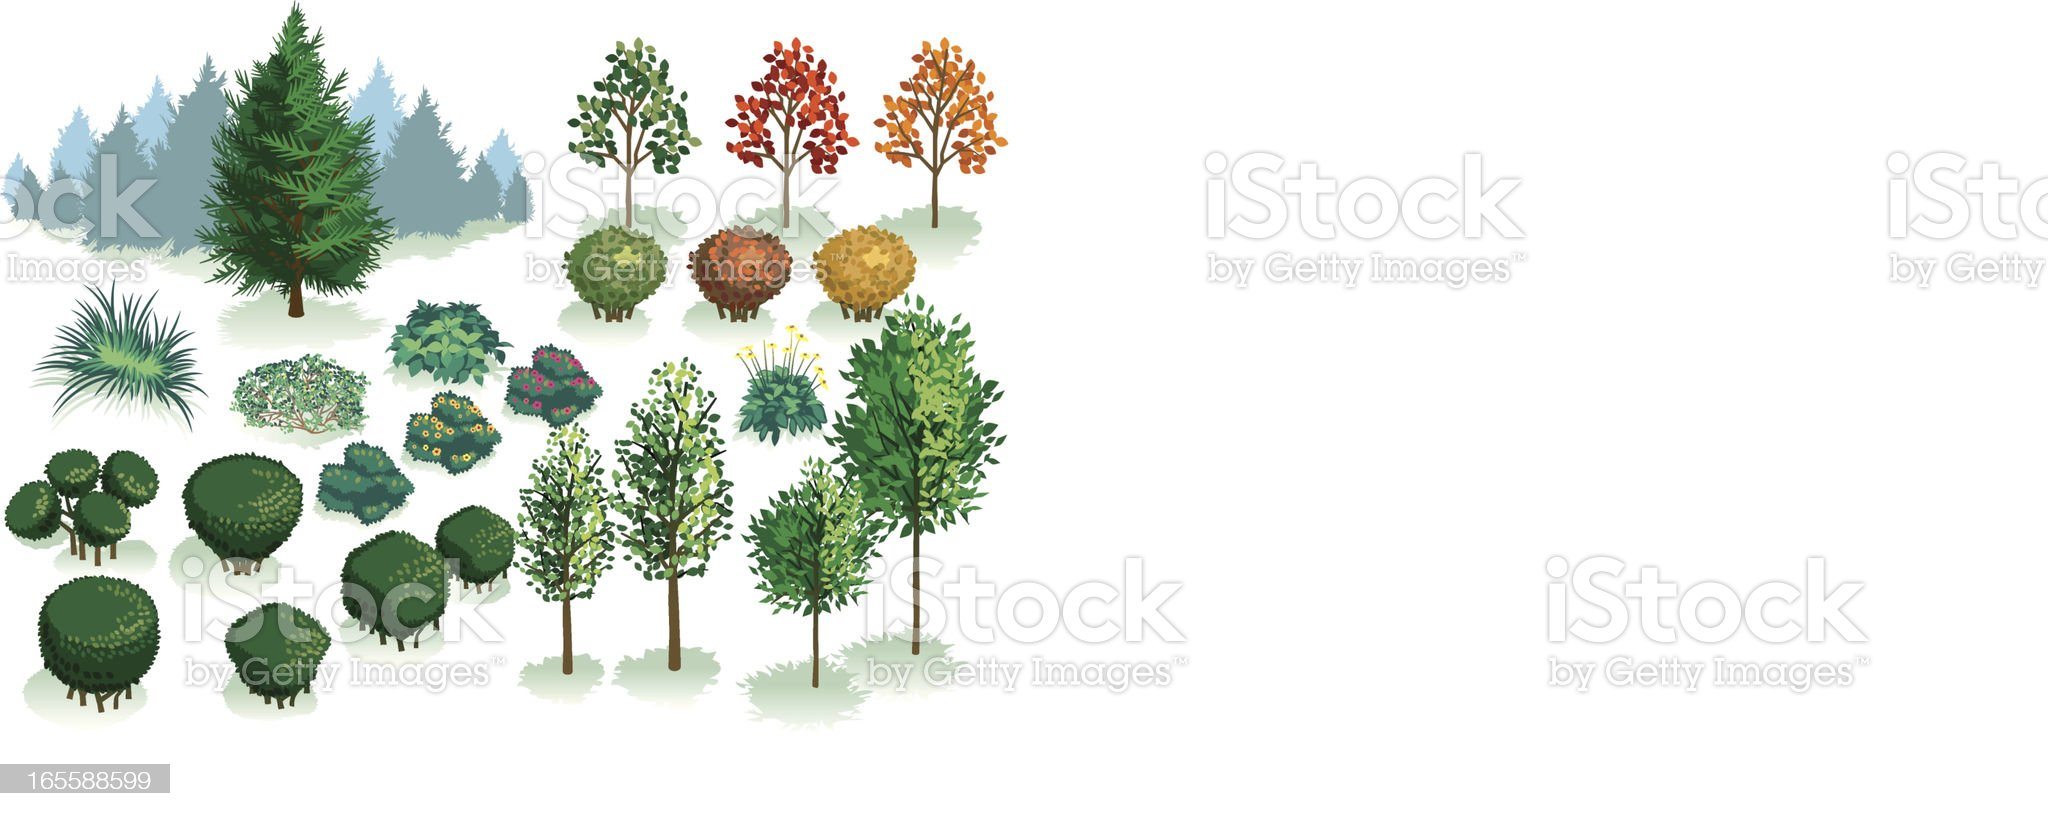 Isometric Set, Foliage of Plants, Trees and Bushes royalty-free stock vector art